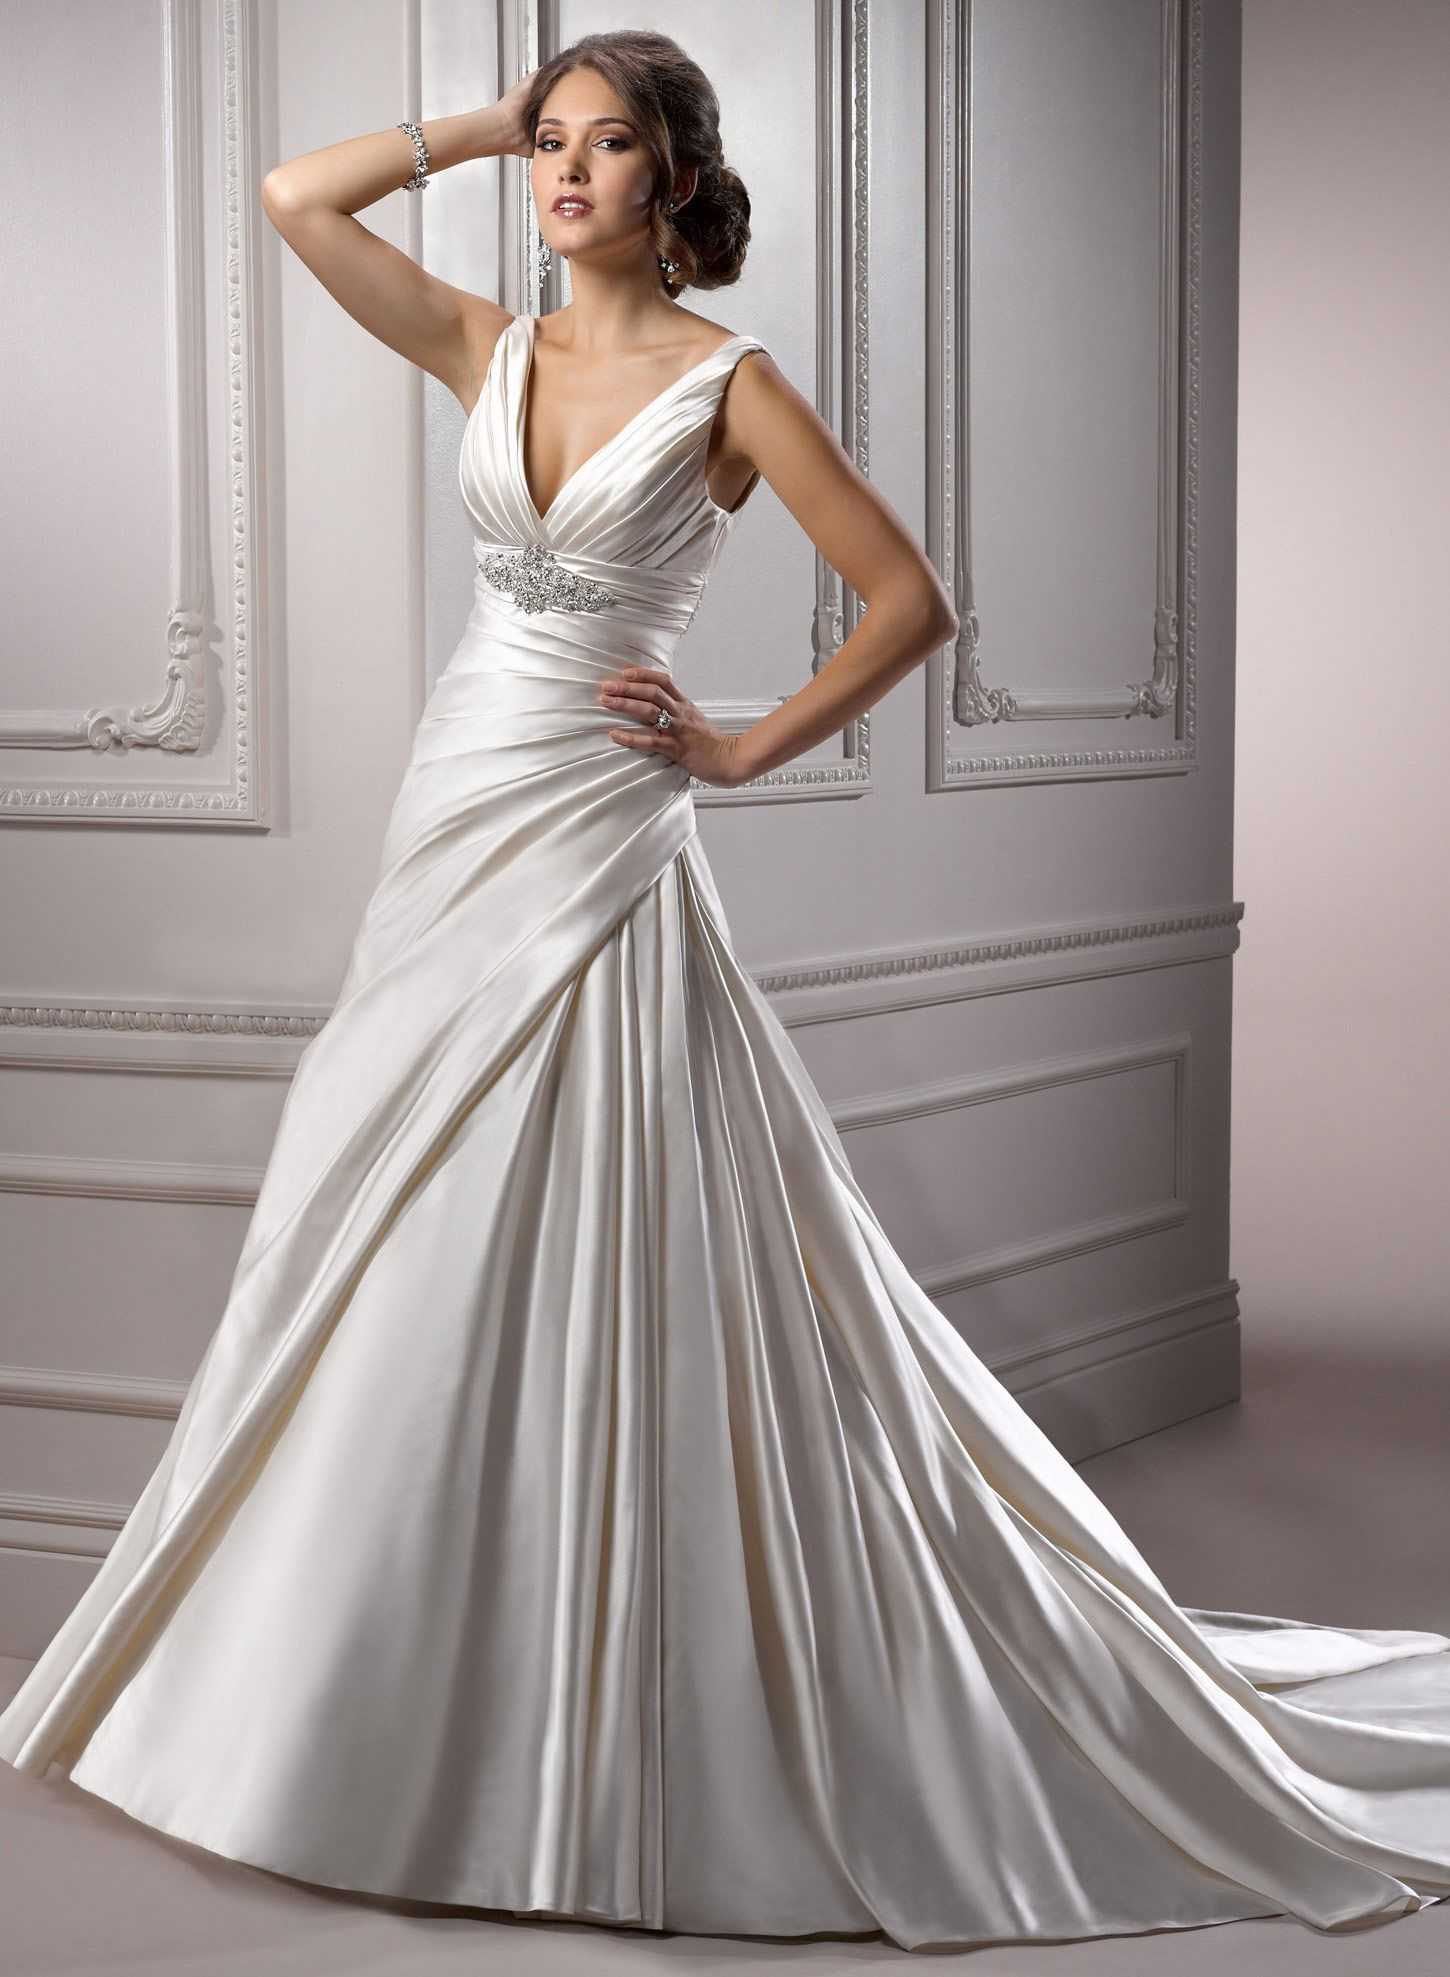 Non-strapless dresses! : wedding gowns large busted non strapless ...